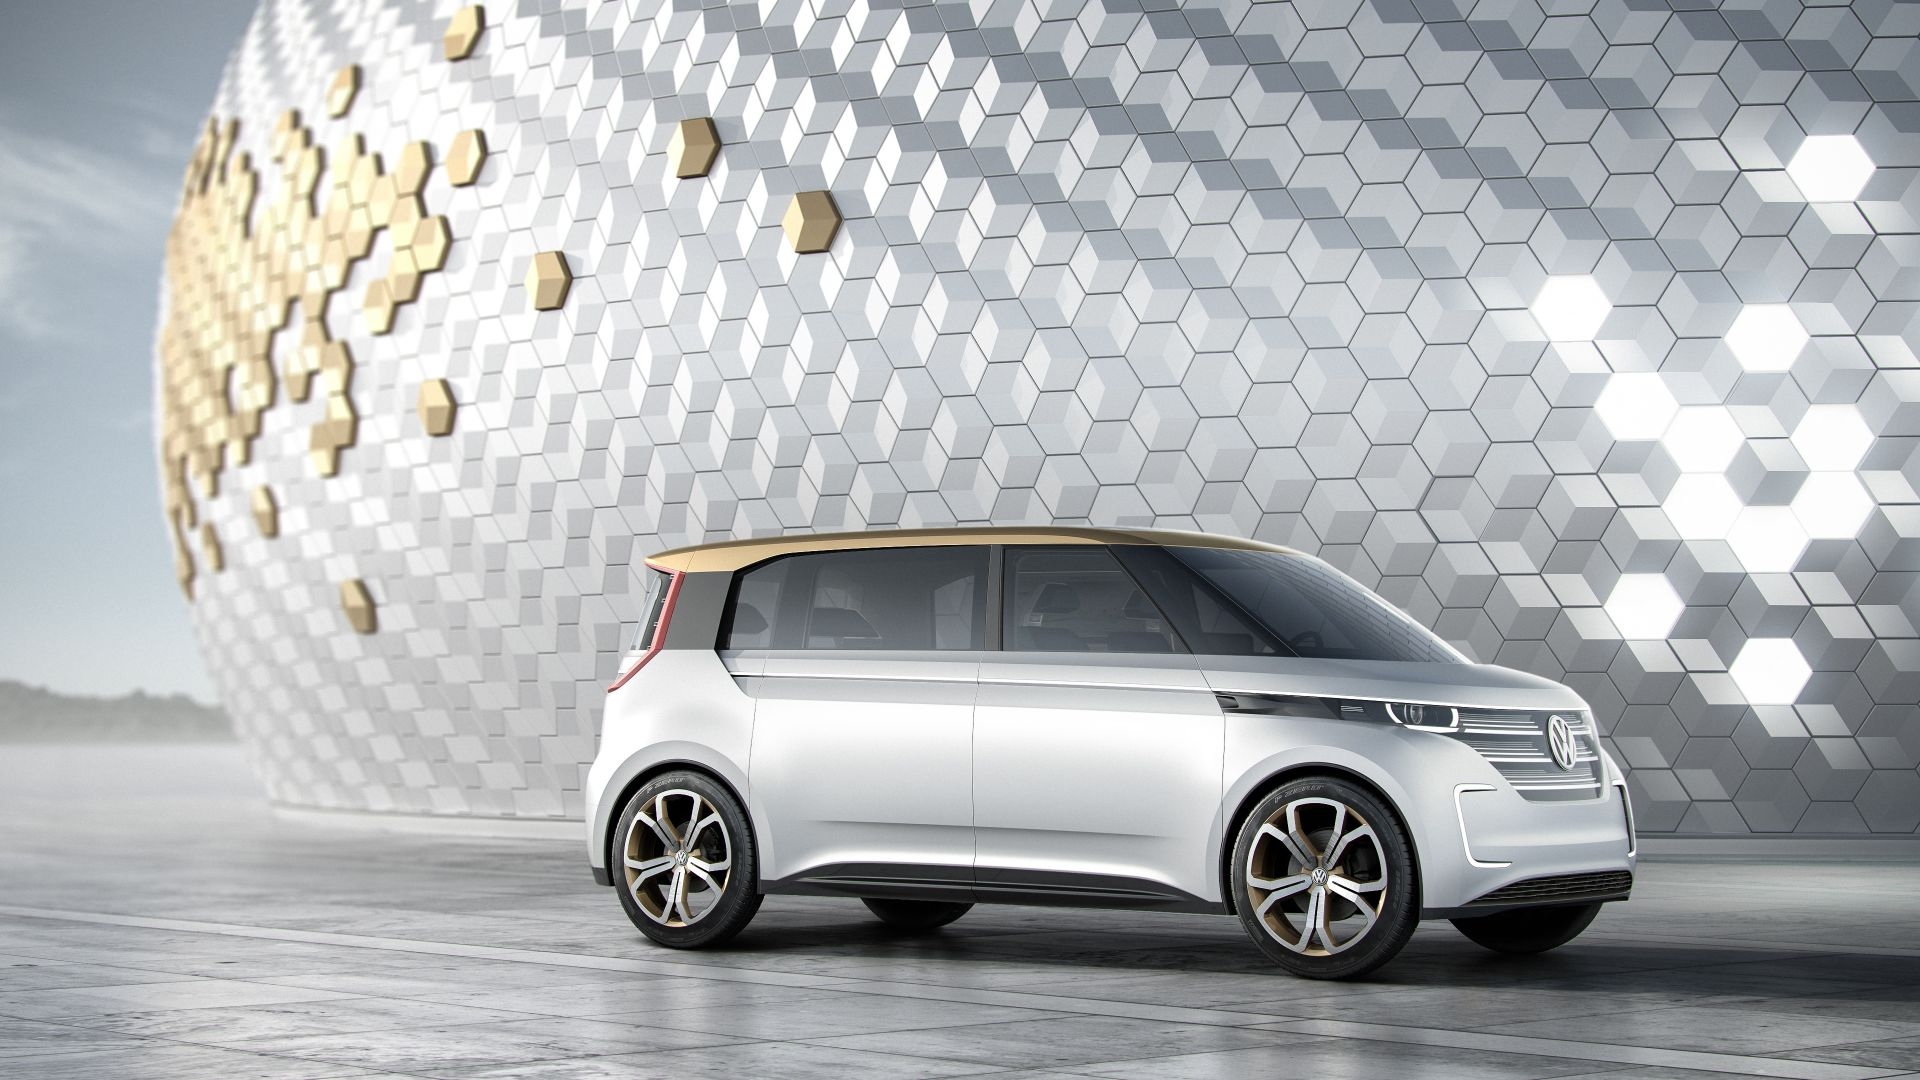 Volkswagen BUDD-e, CES 2016, electric microbus, silver (horizontal)